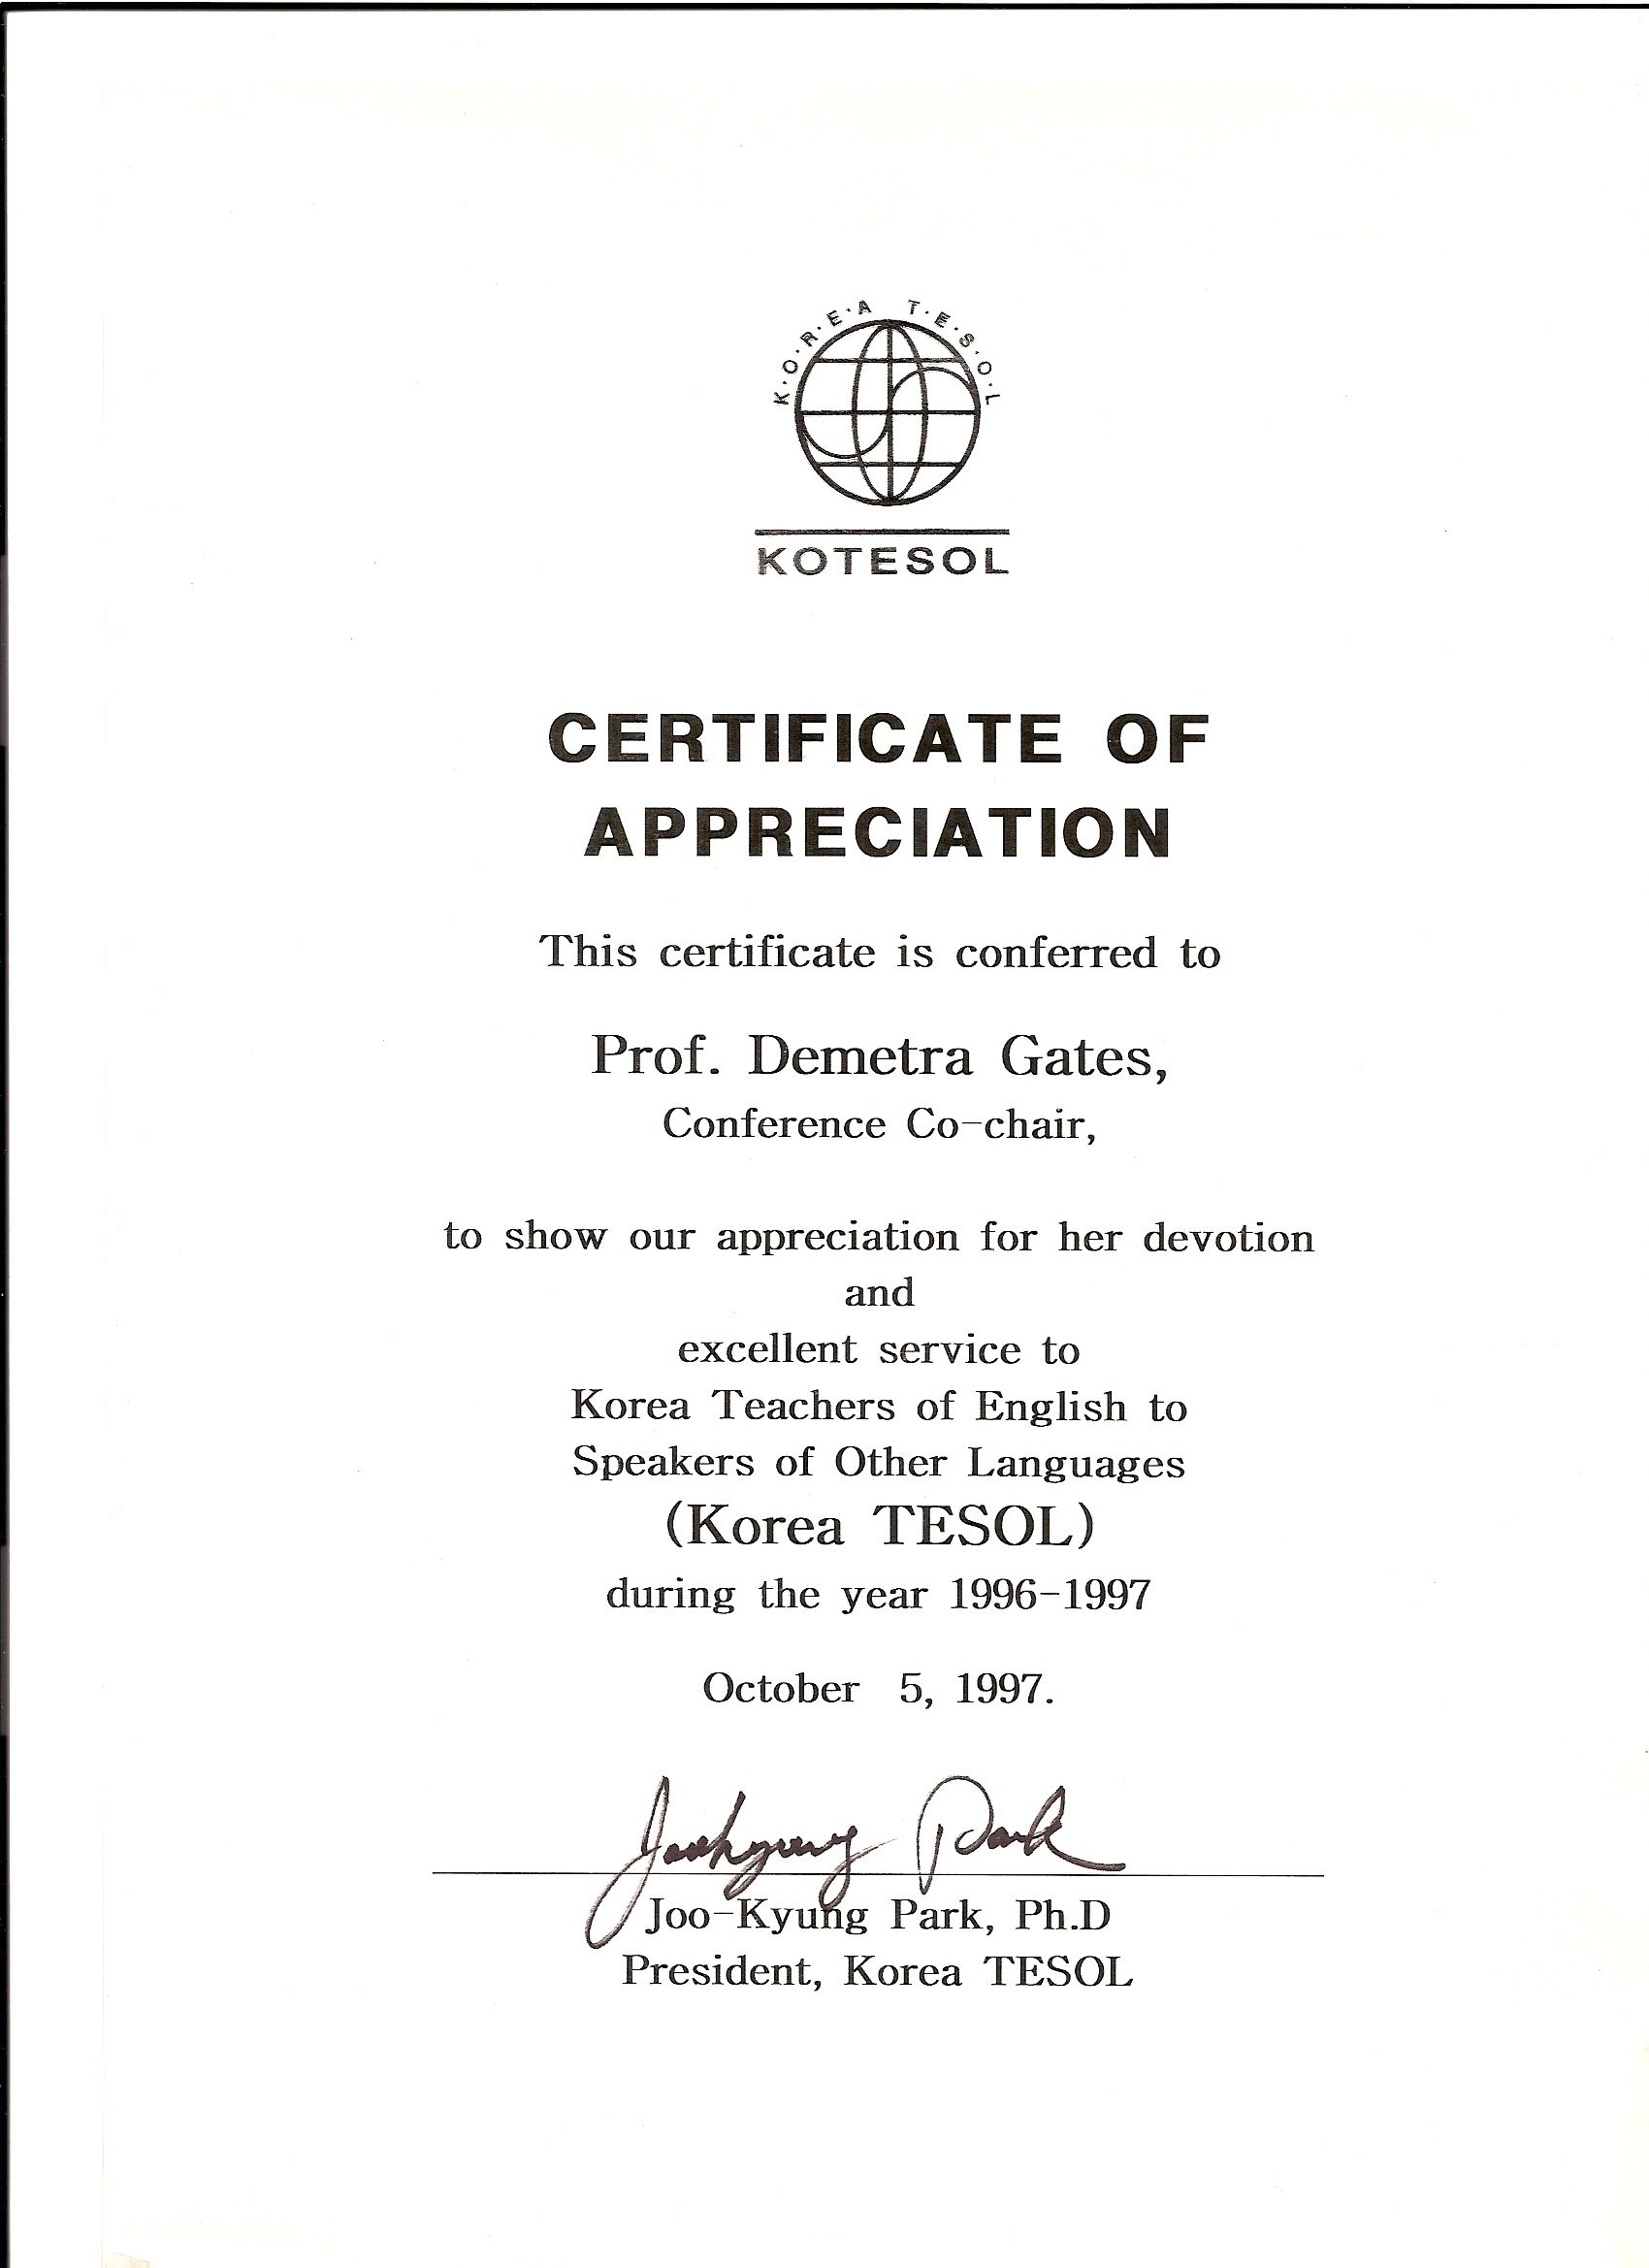 Kotesol presidential certificate of appreciation 1997 kotesol presidential certificate of appreciation conference co chair yadclub Images